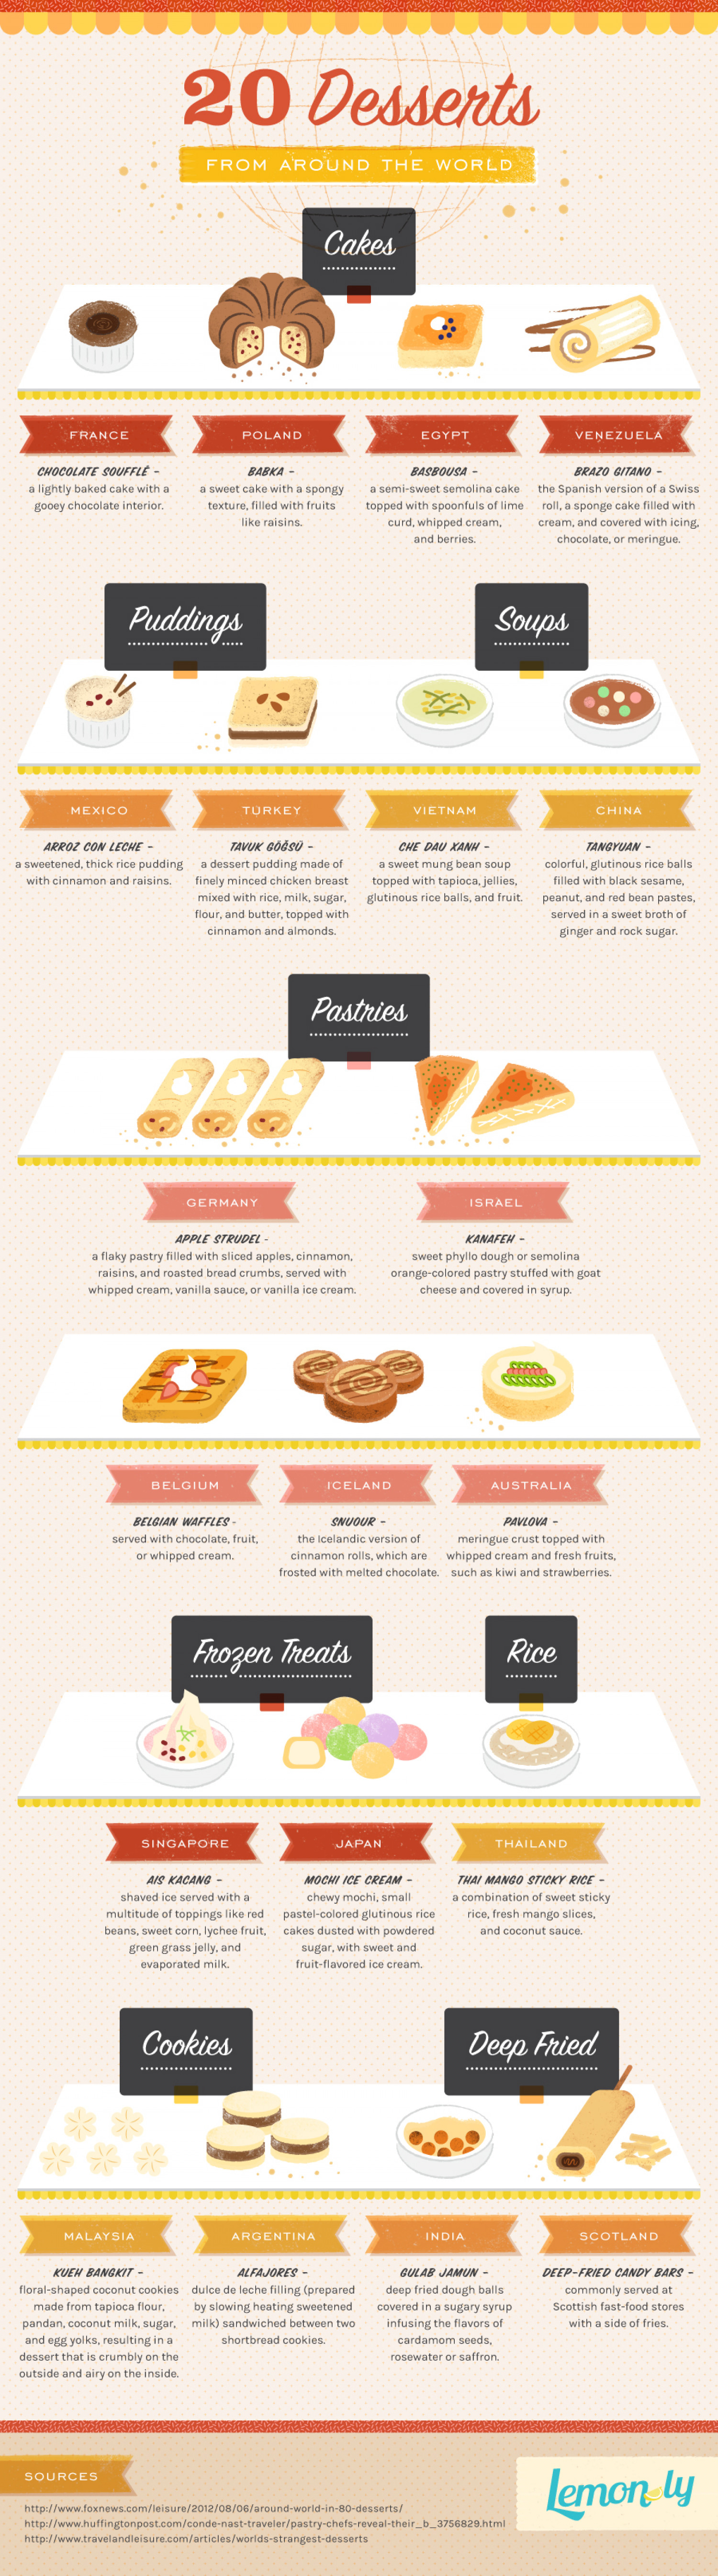 20 Desserts from Around the World Infographic